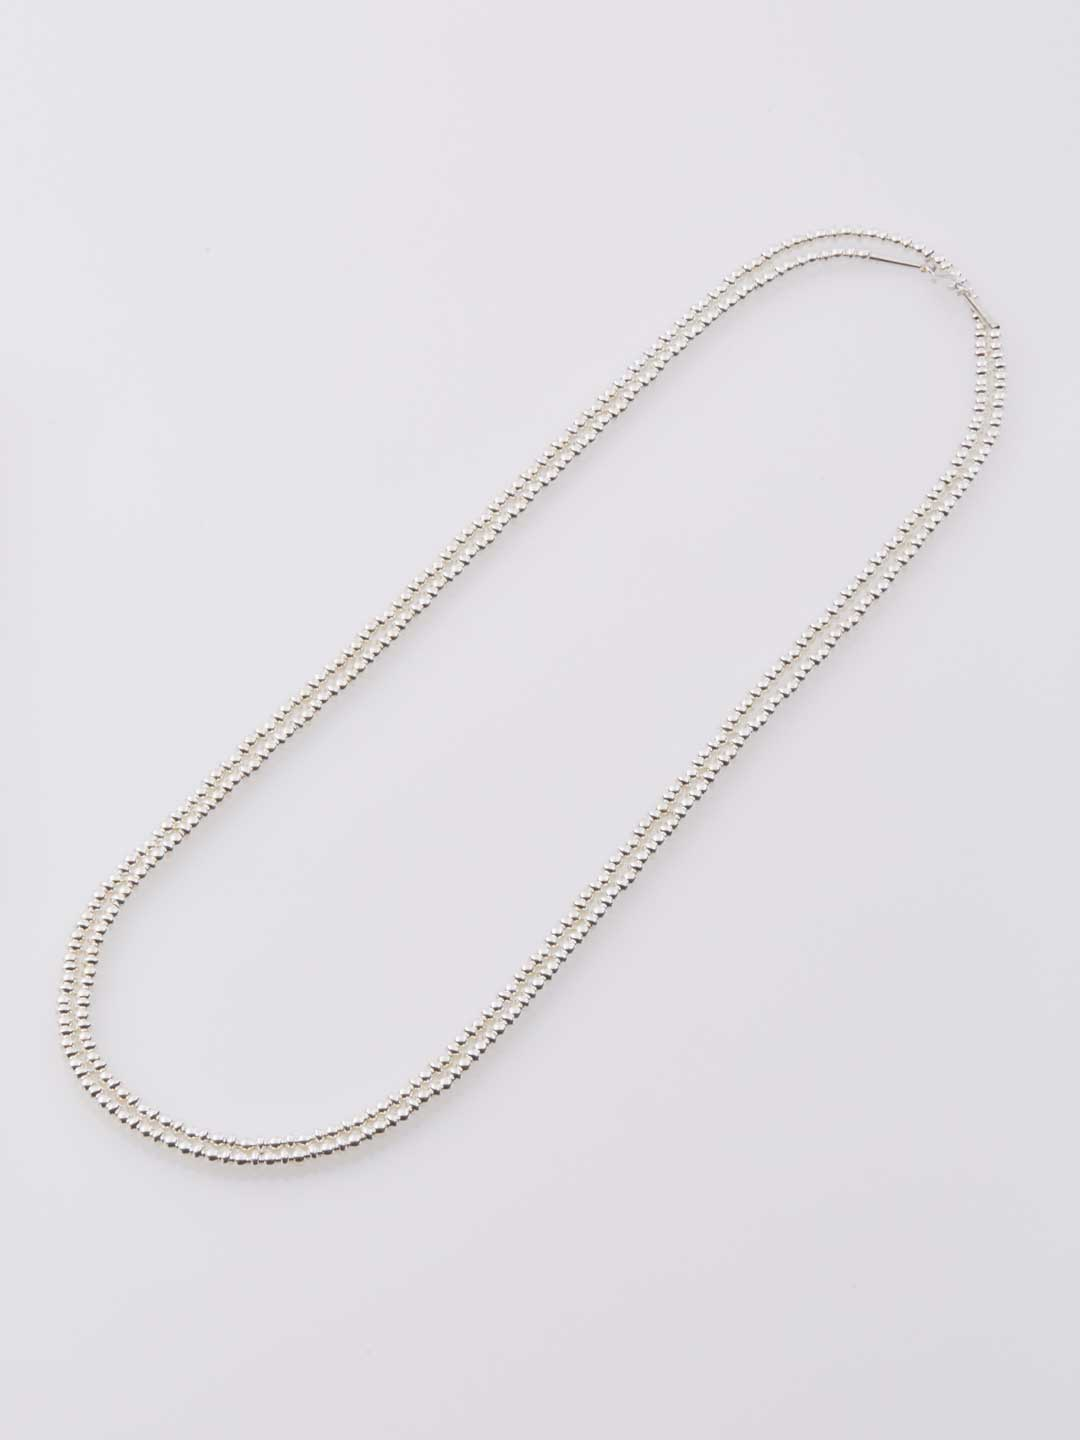 4mm Ball & Disc Chain Necklace 150cm  - Silver